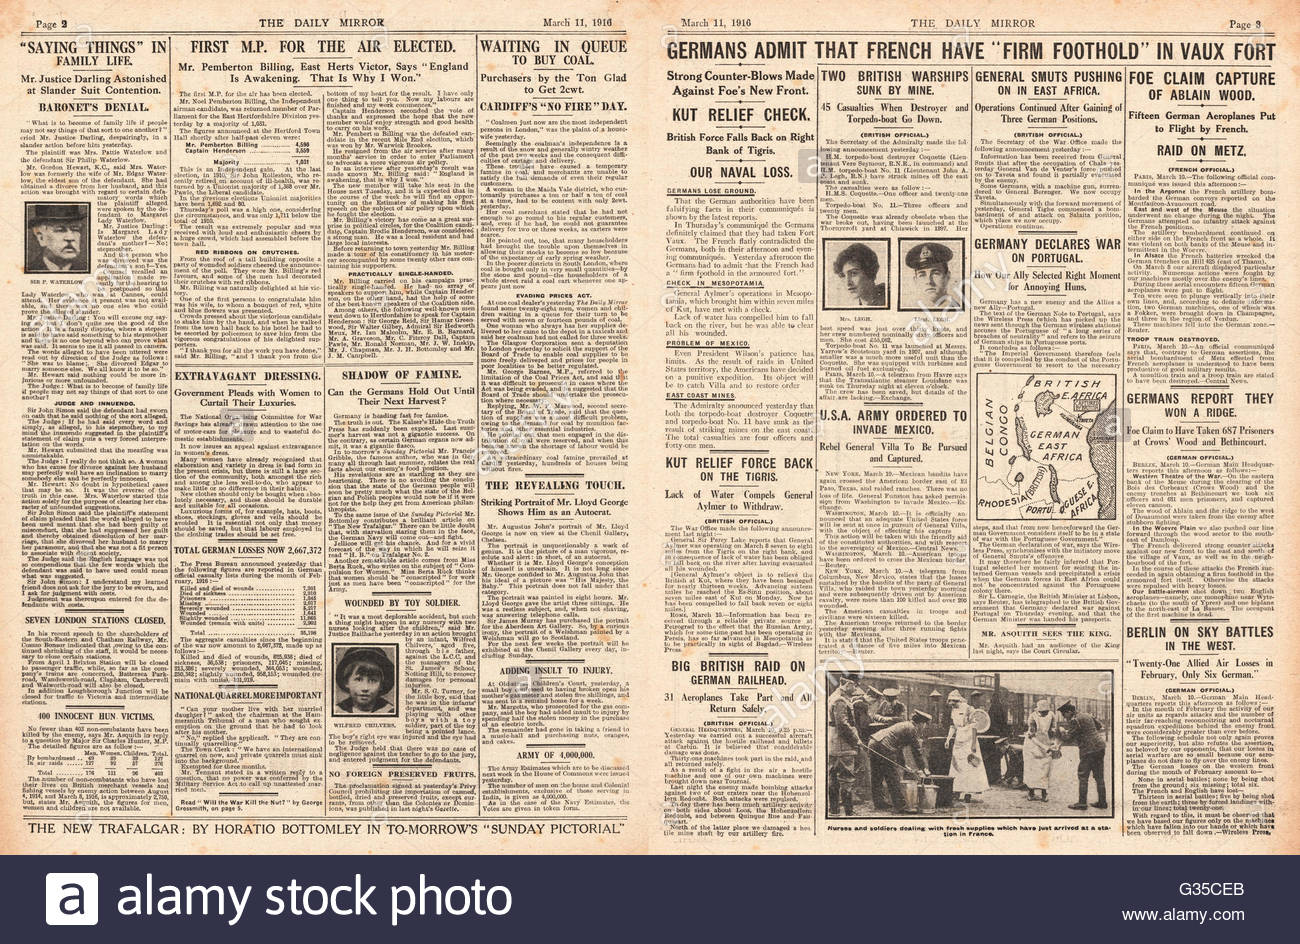 1916 Daily Mirror pages 2 & 3 Noel Pemberton-Billing wins Hertford by-election, French Army hold Fort Vaux and - Stock Image